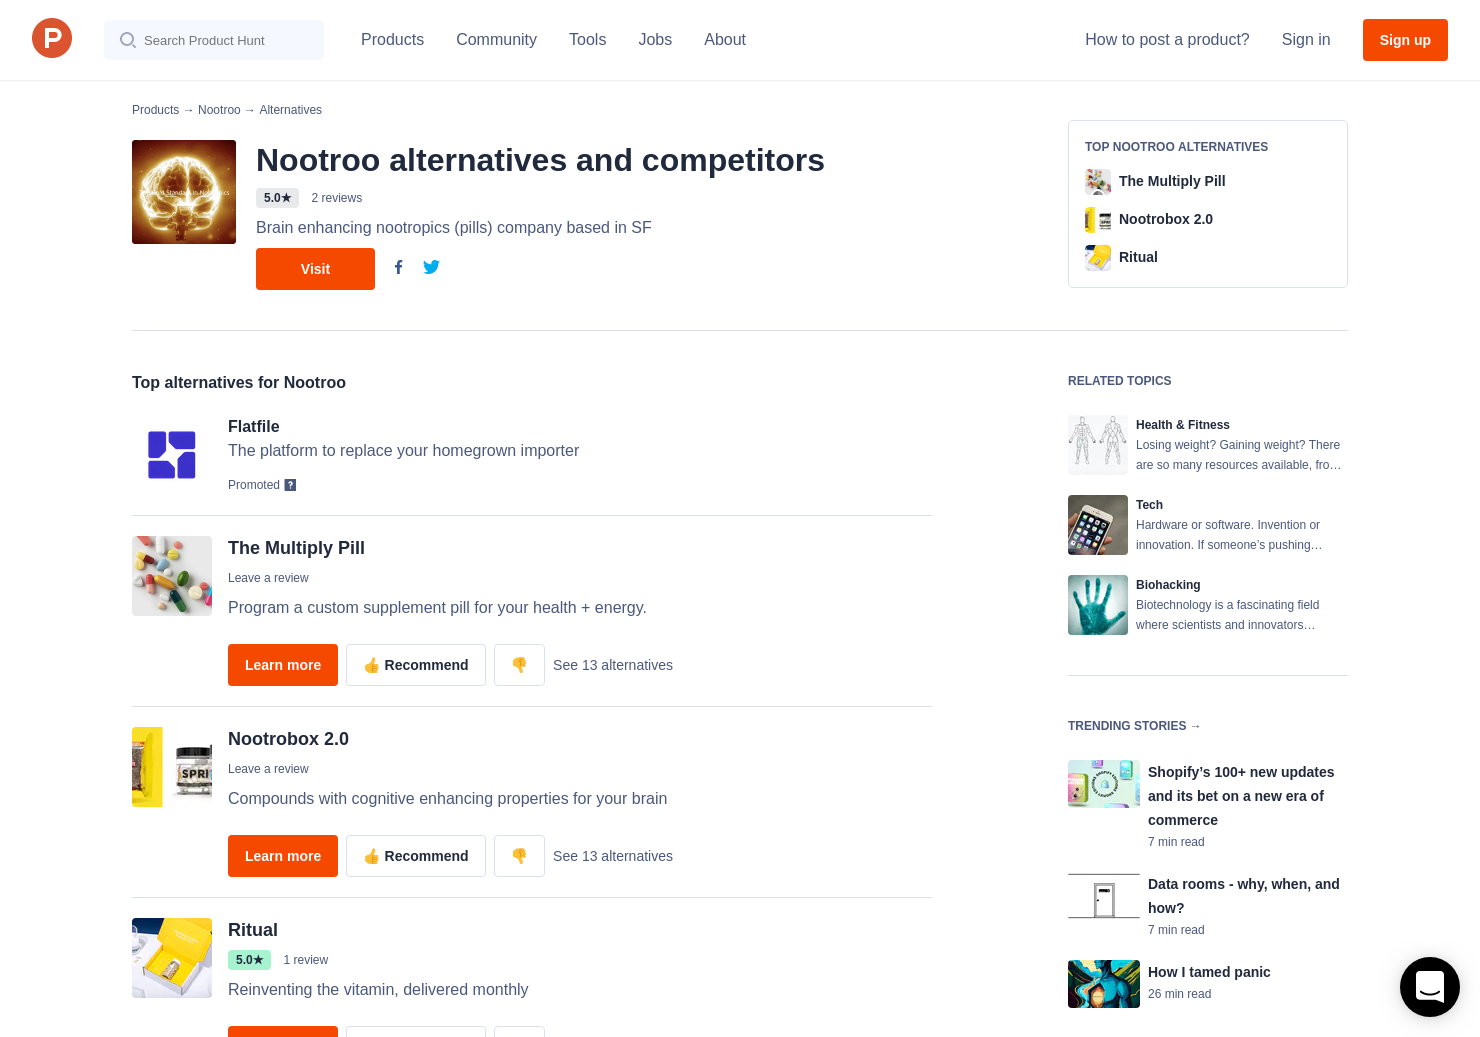 5 Alternatives To Nootroo Product Hunt